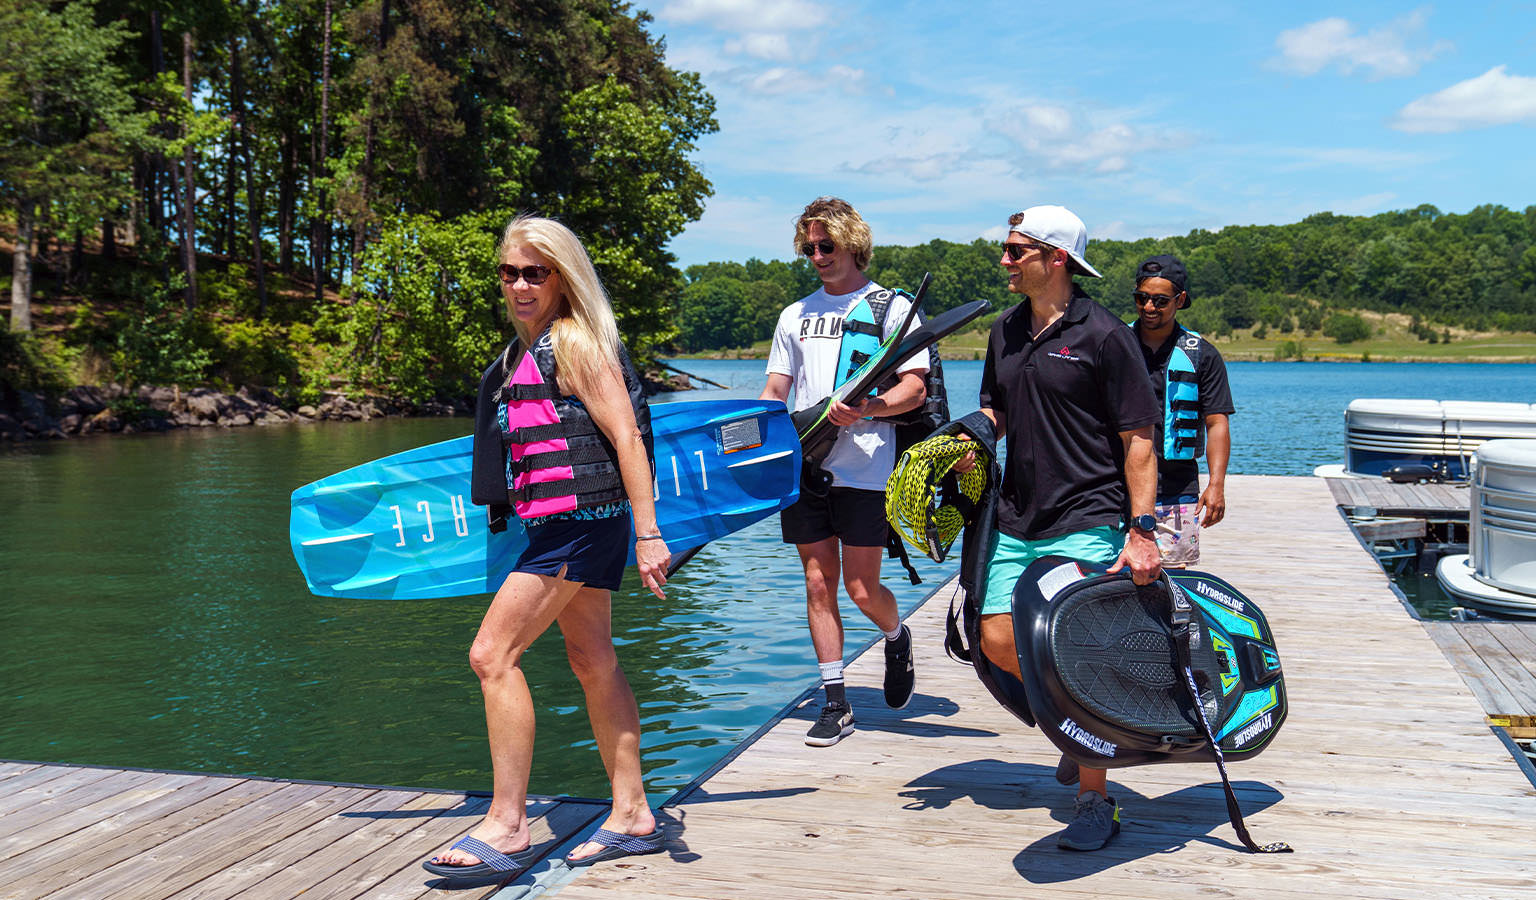 Save up to 45% on life jackets, waterskis, wakeboards & more